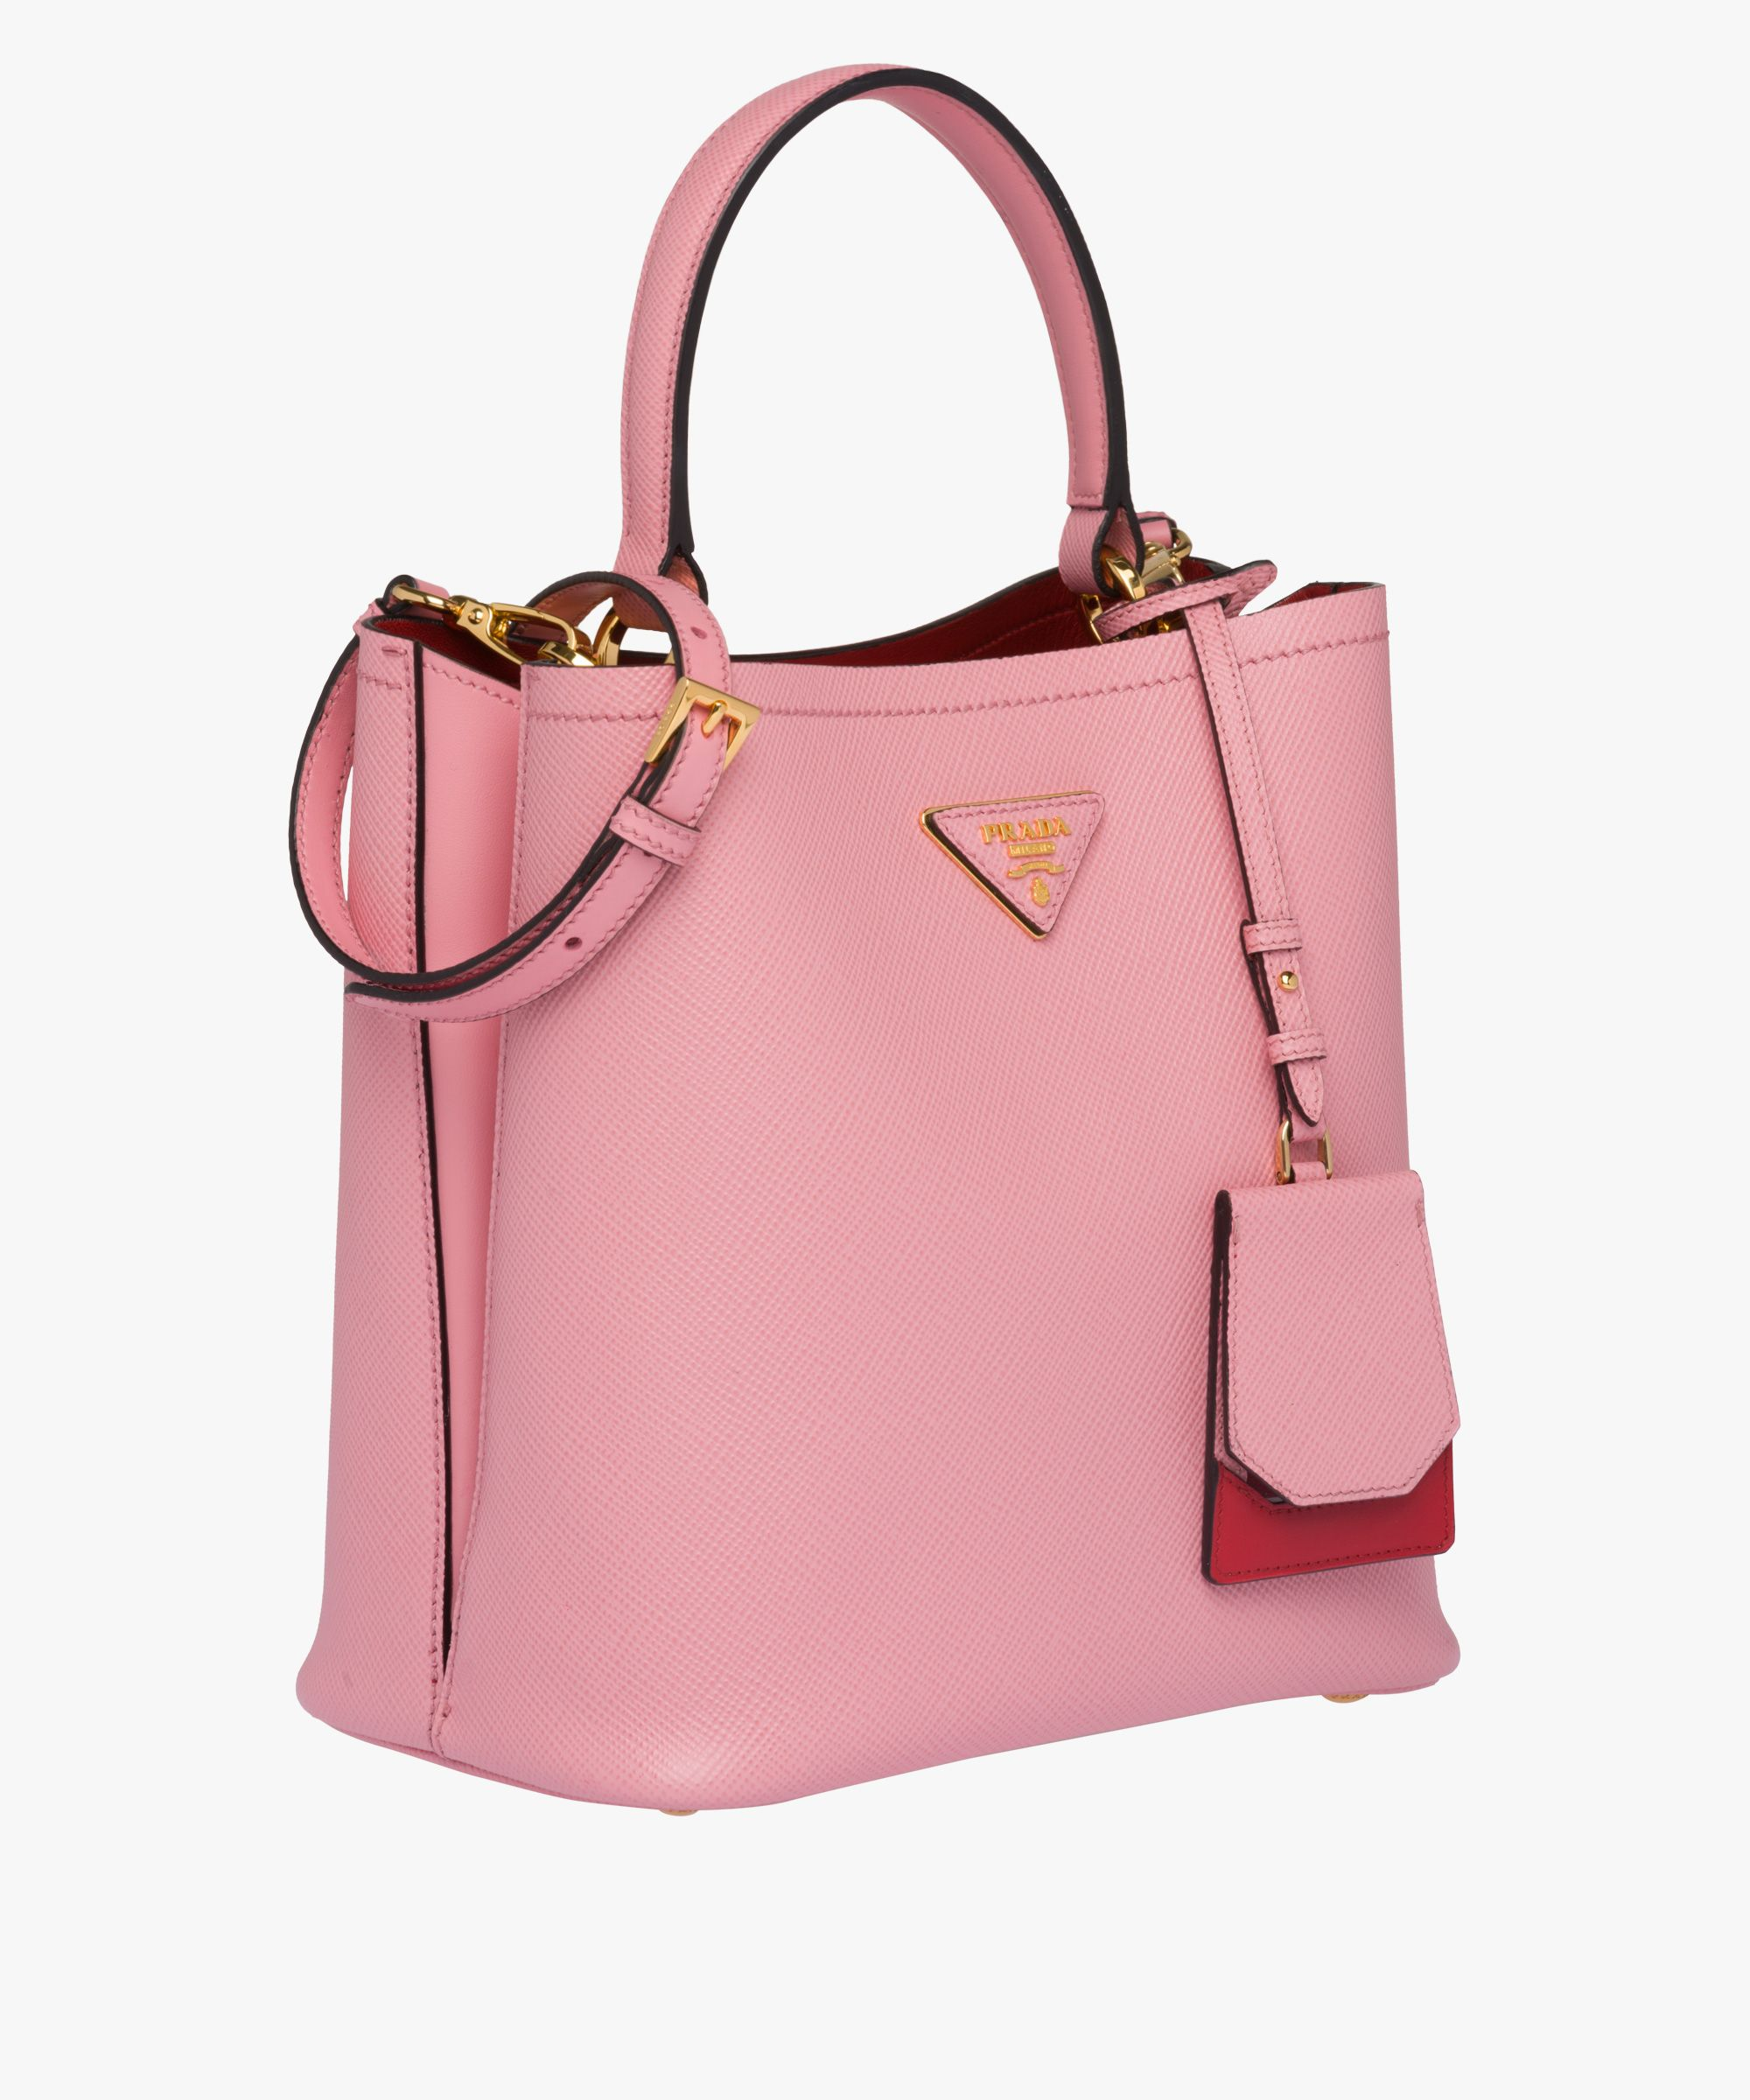 0c6638eb6646 Prada - Double Medium petal pink/ fiery red bag | BAGS in 2019 ...